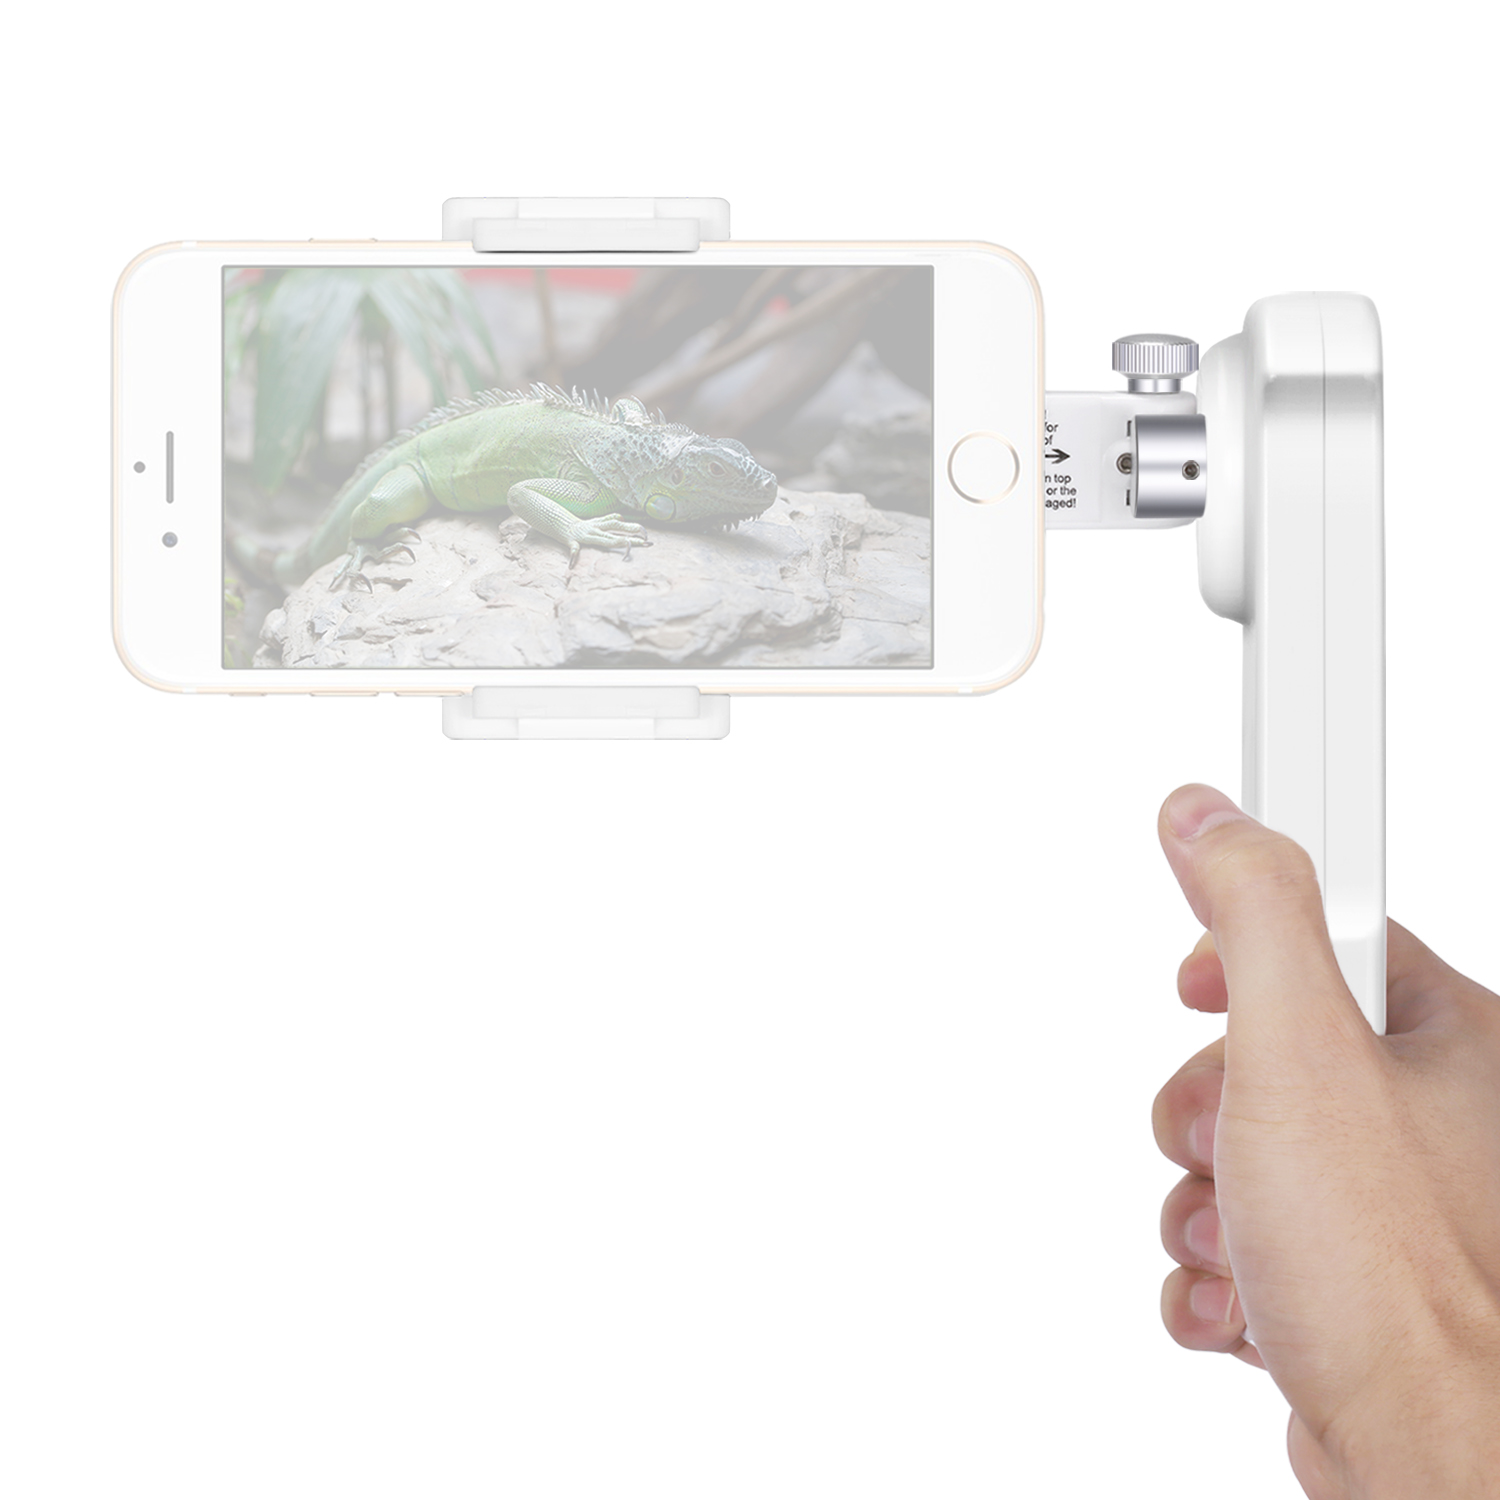 Neewer NW-2AG200 2-Axis Foldable Handheld Smartphone Gimbal Stabilizer for iPhone 7 Plus 7 6s 6s Plus Samsung S5 S6 Edge Plus Image